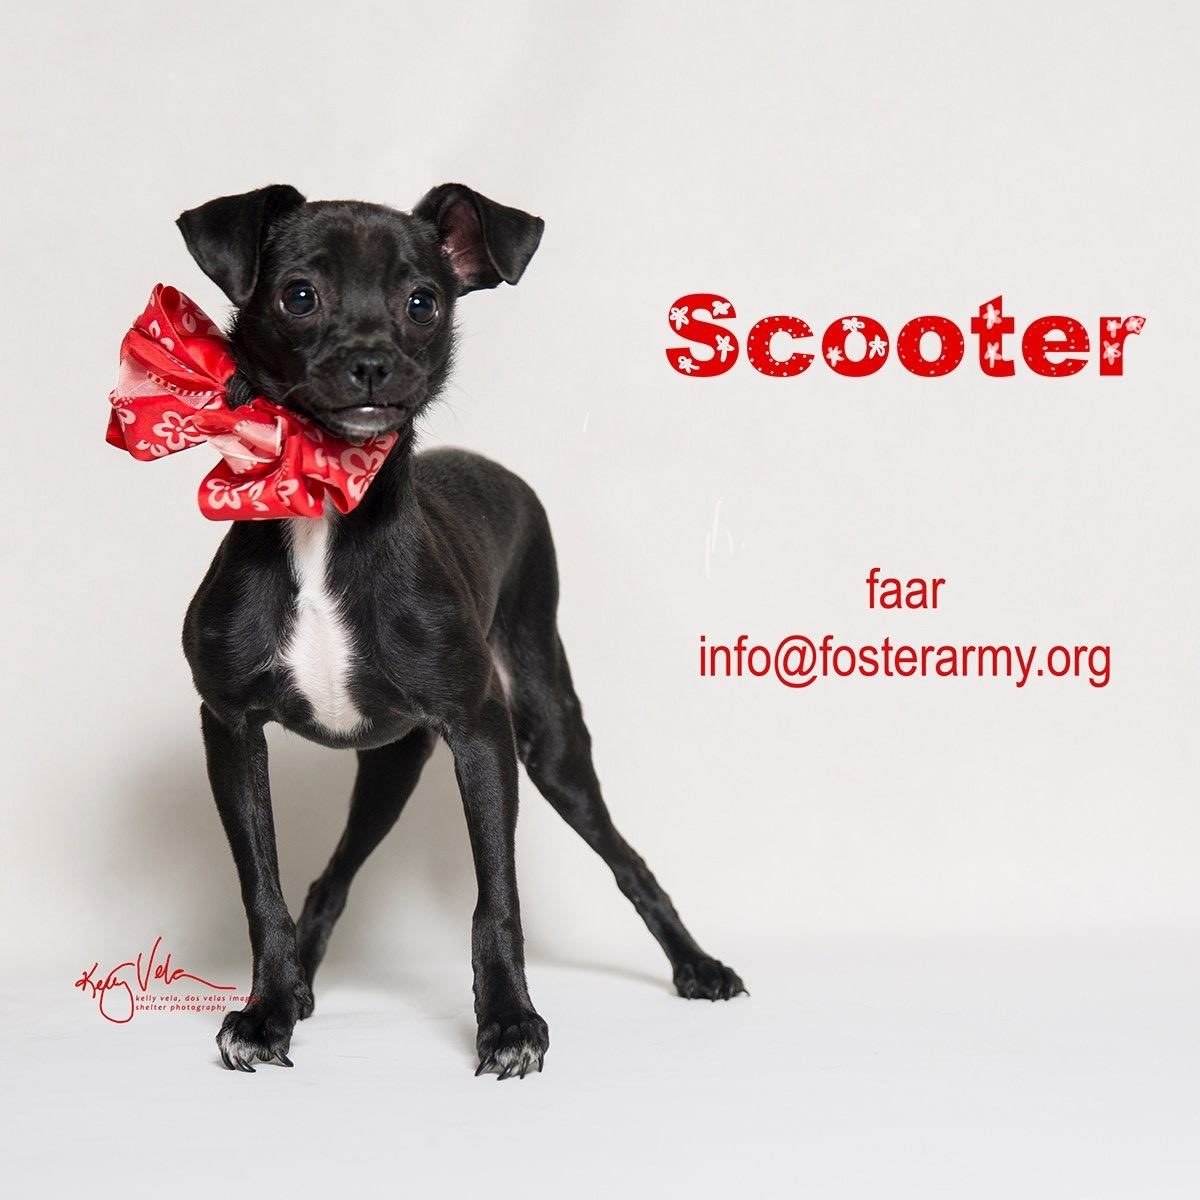 Adopt Scooter the most special dog in the world! Riverside, CA with Foster Army Animal Rescue